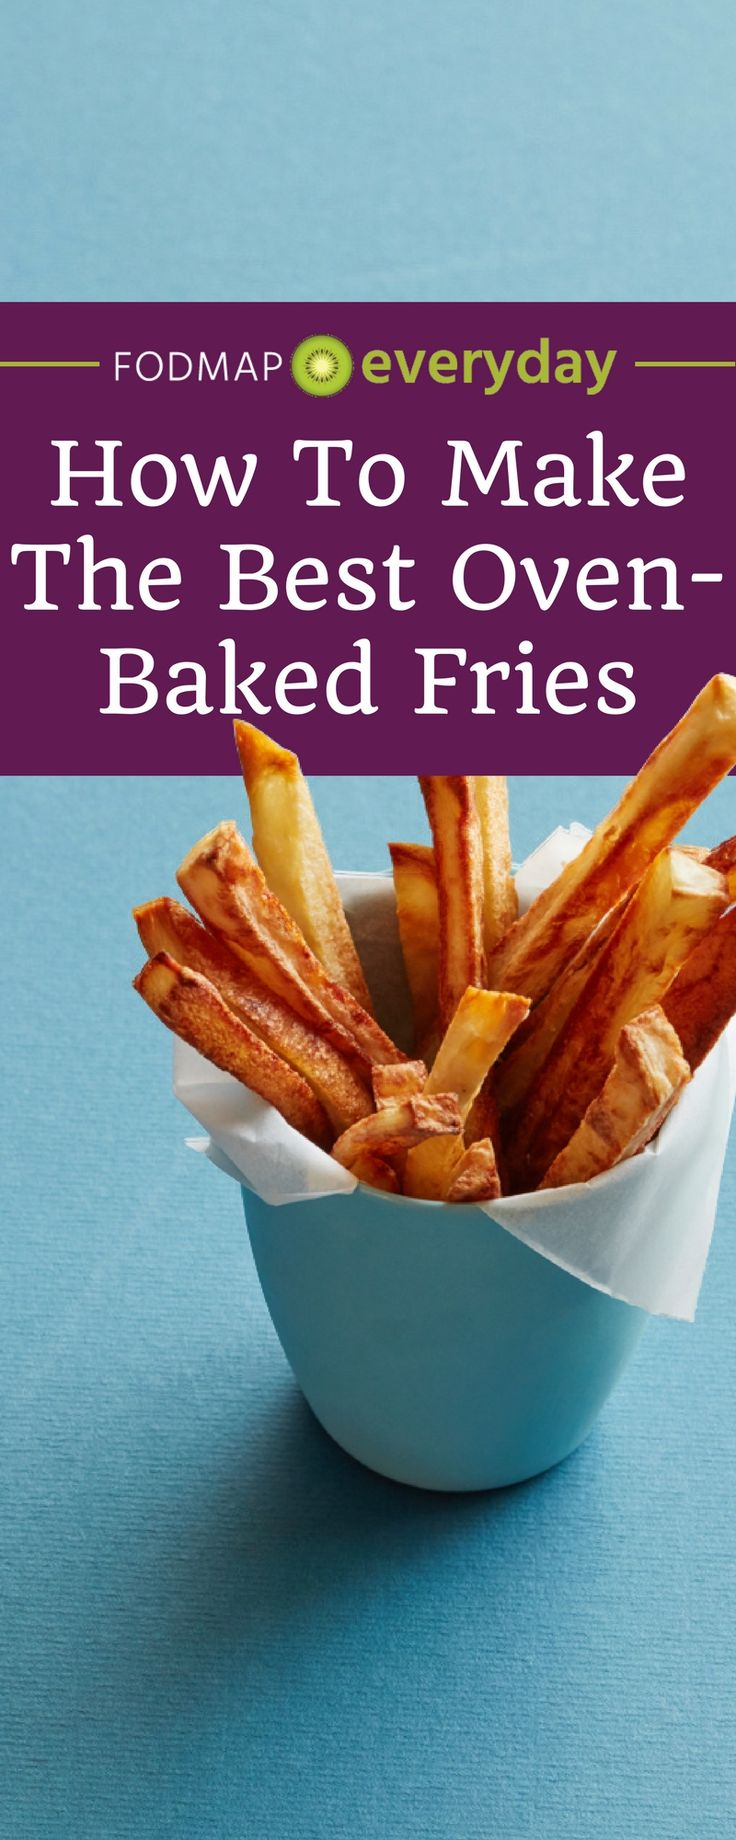 Learn how to make crispy delicious oven-baked fries! Oven-baked fries are low FODMAP and much healthier than deep fried french fries!